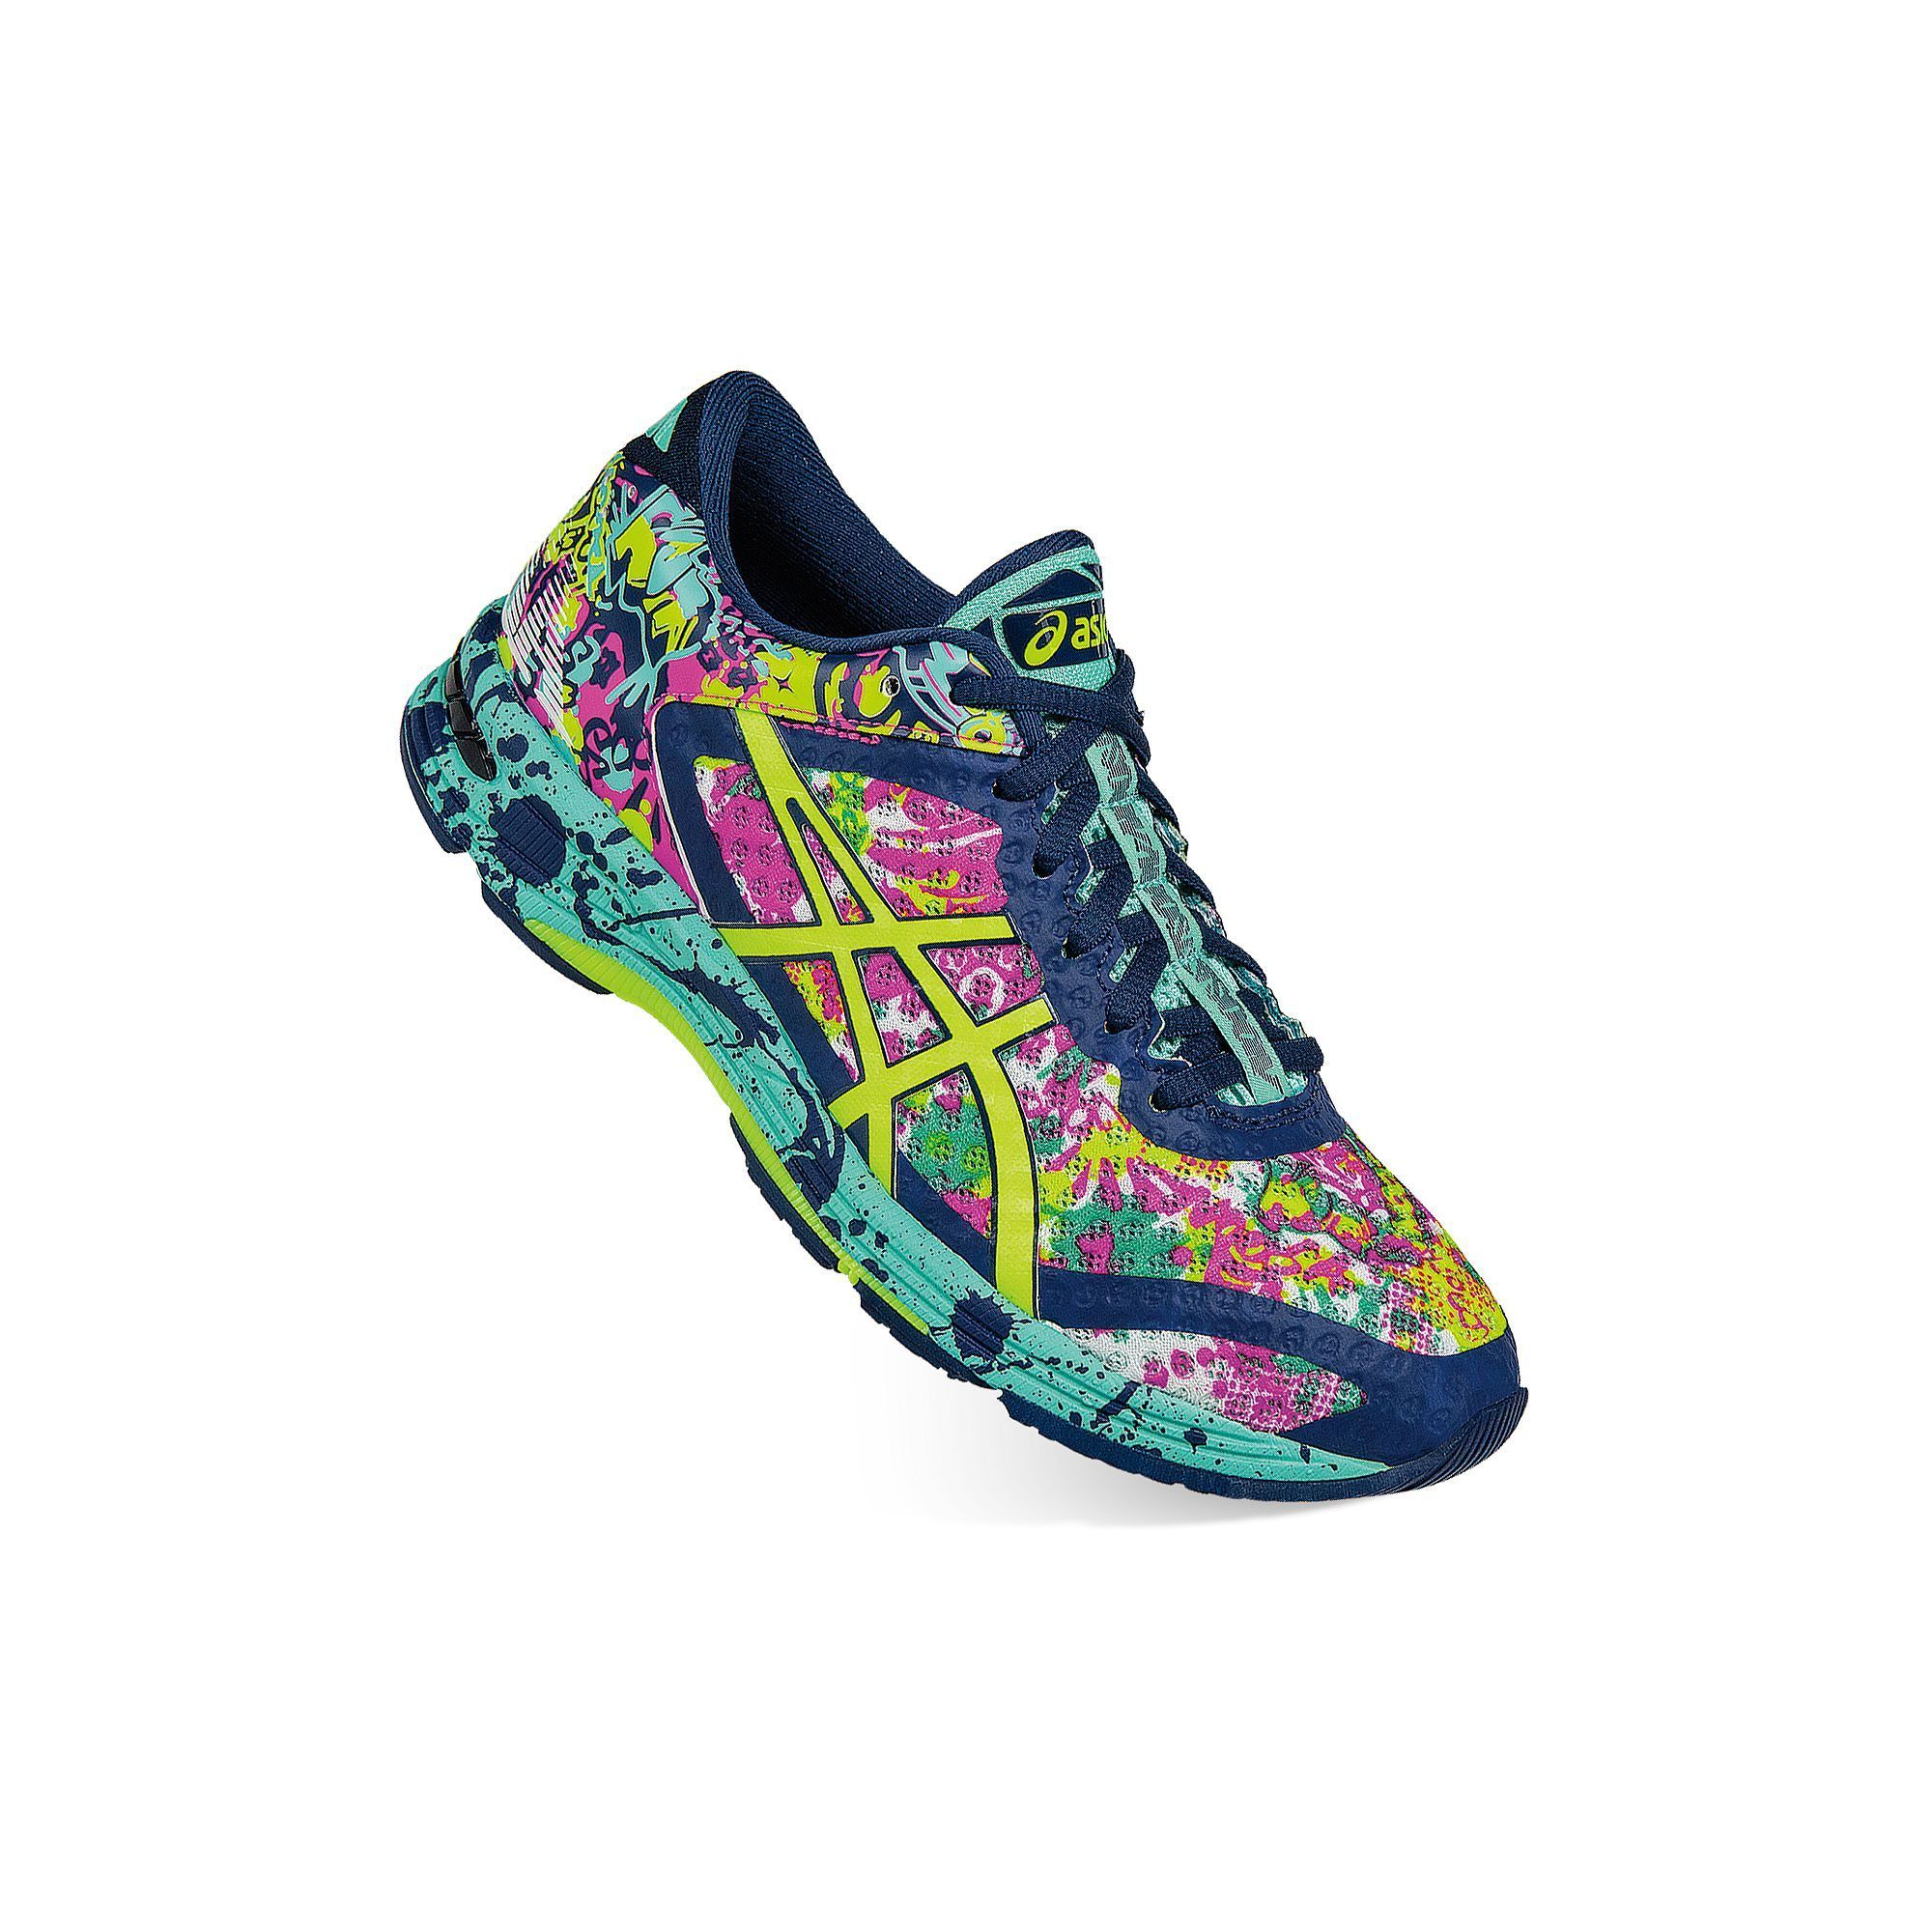 ASICS GEL-Noosa Tri 11 Women's Running Shoes